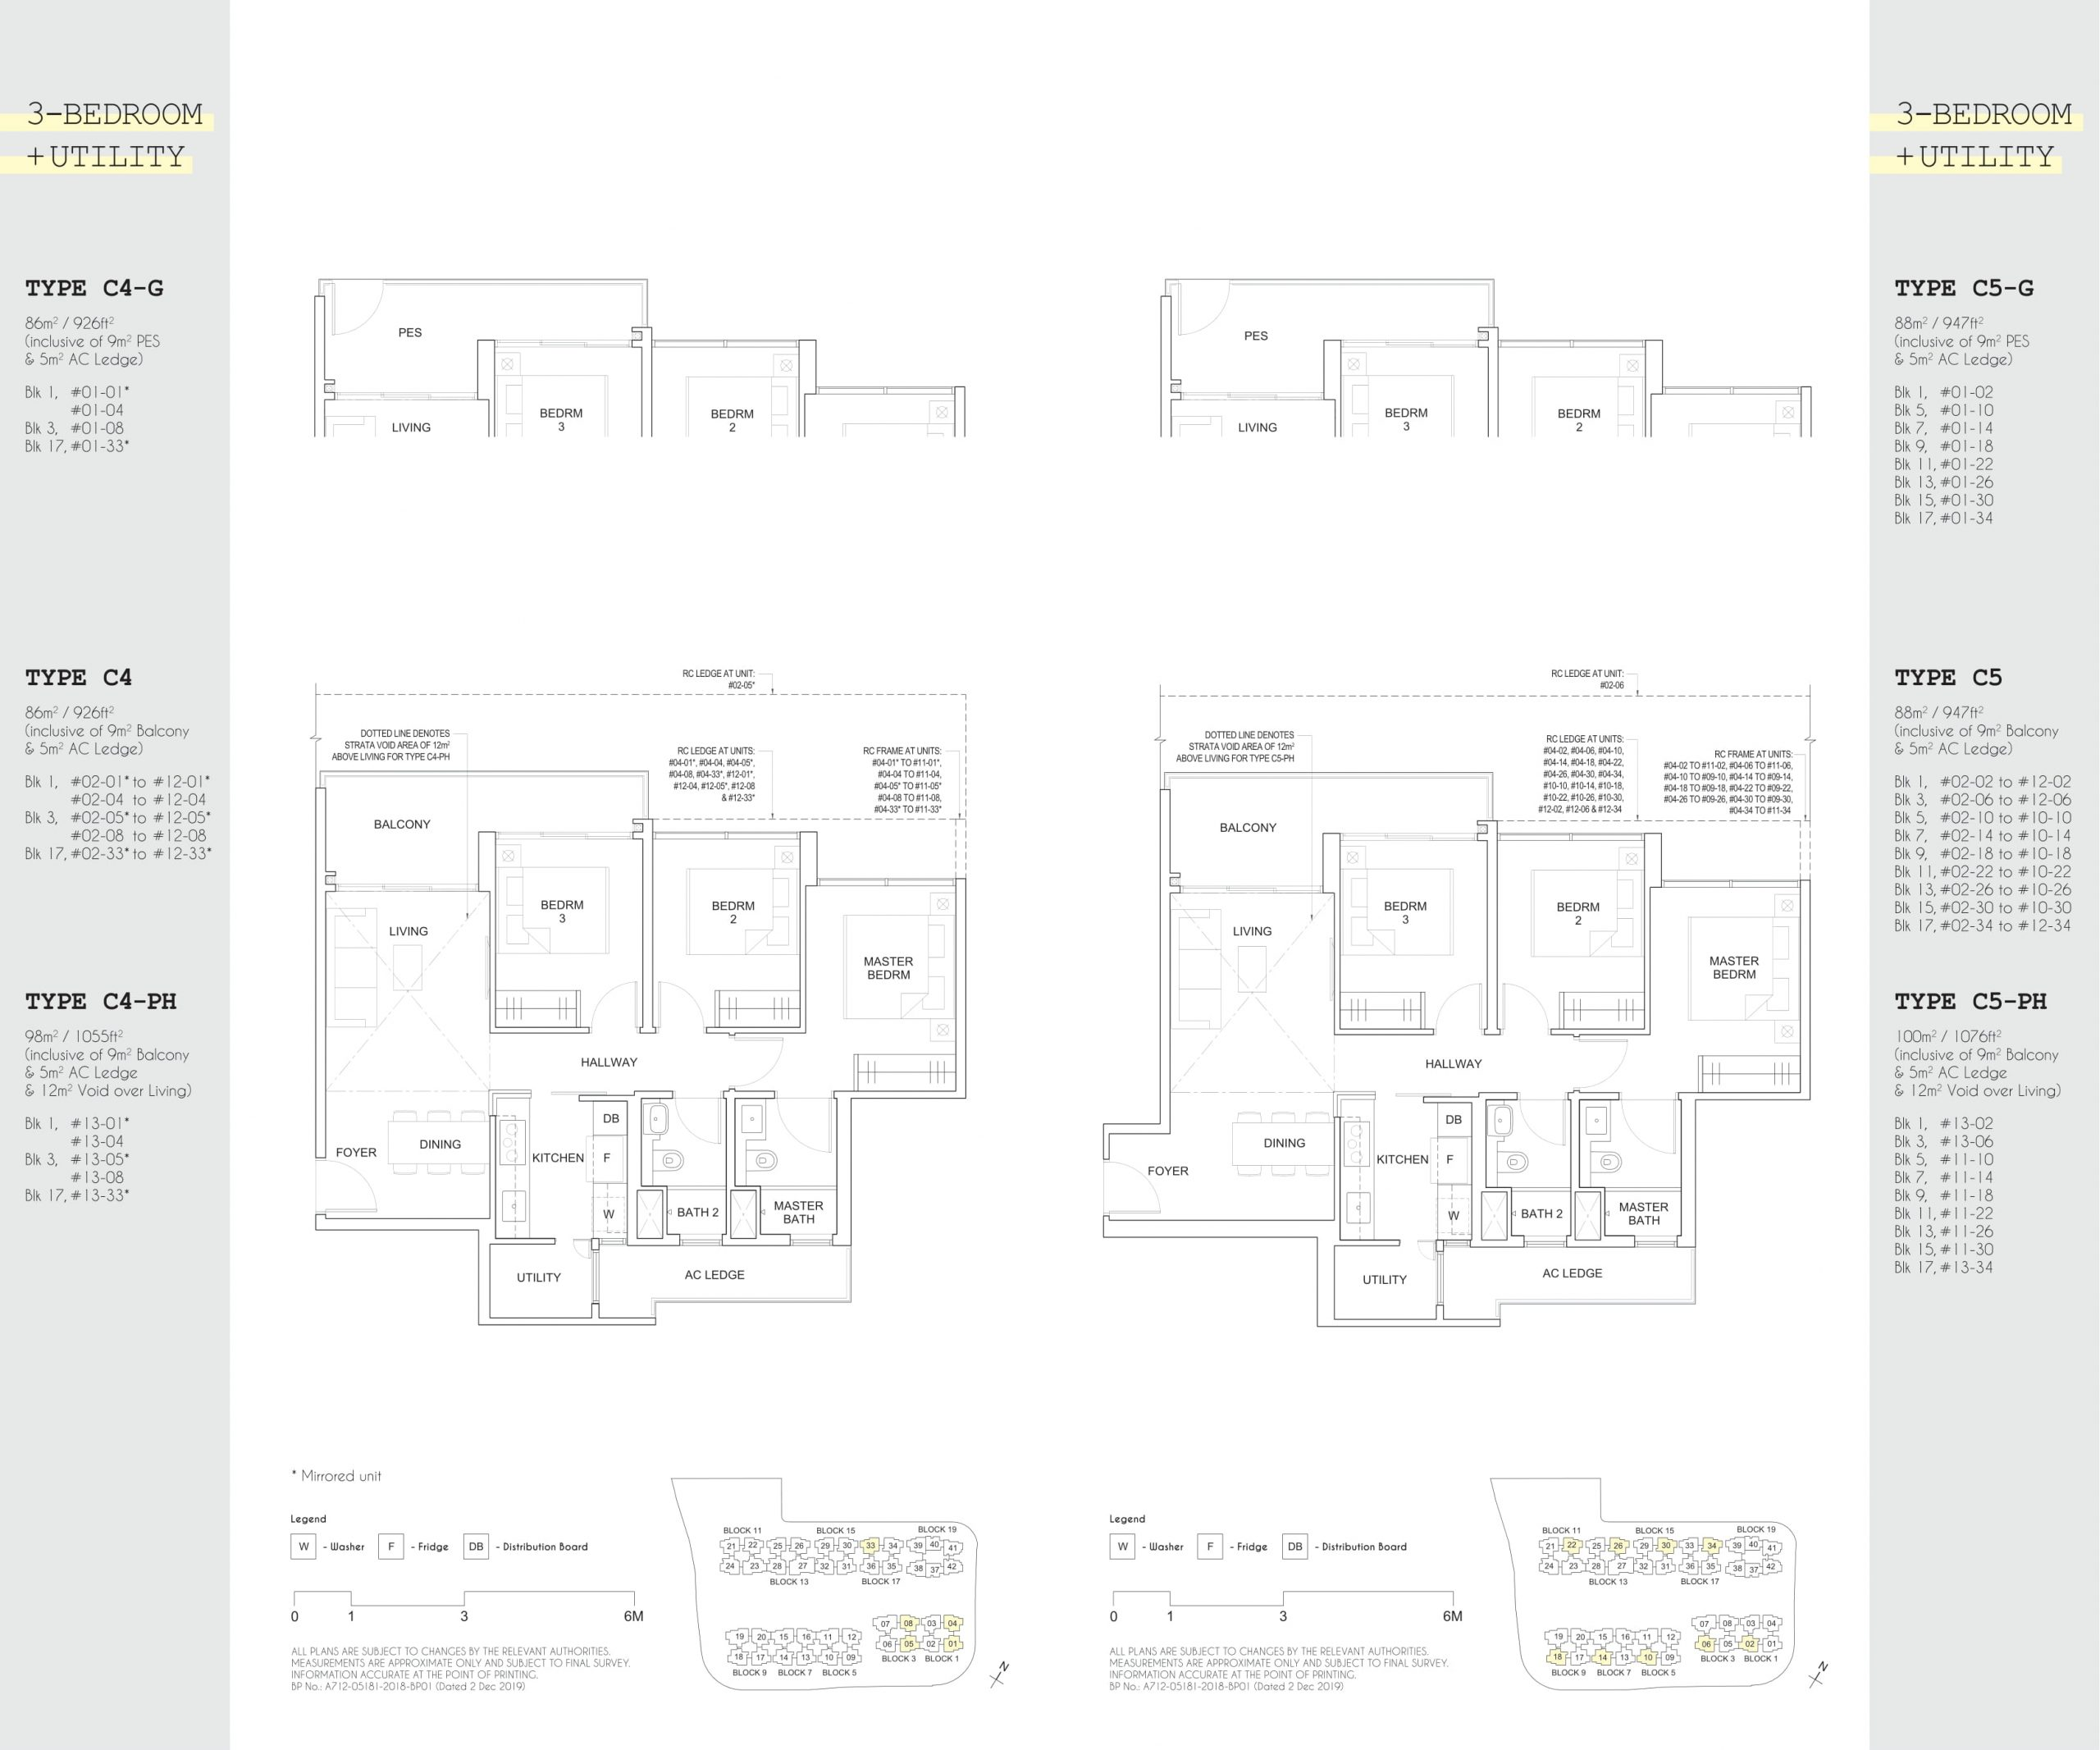 Parc Canberra EC's three-bedroom + utility / + yard types